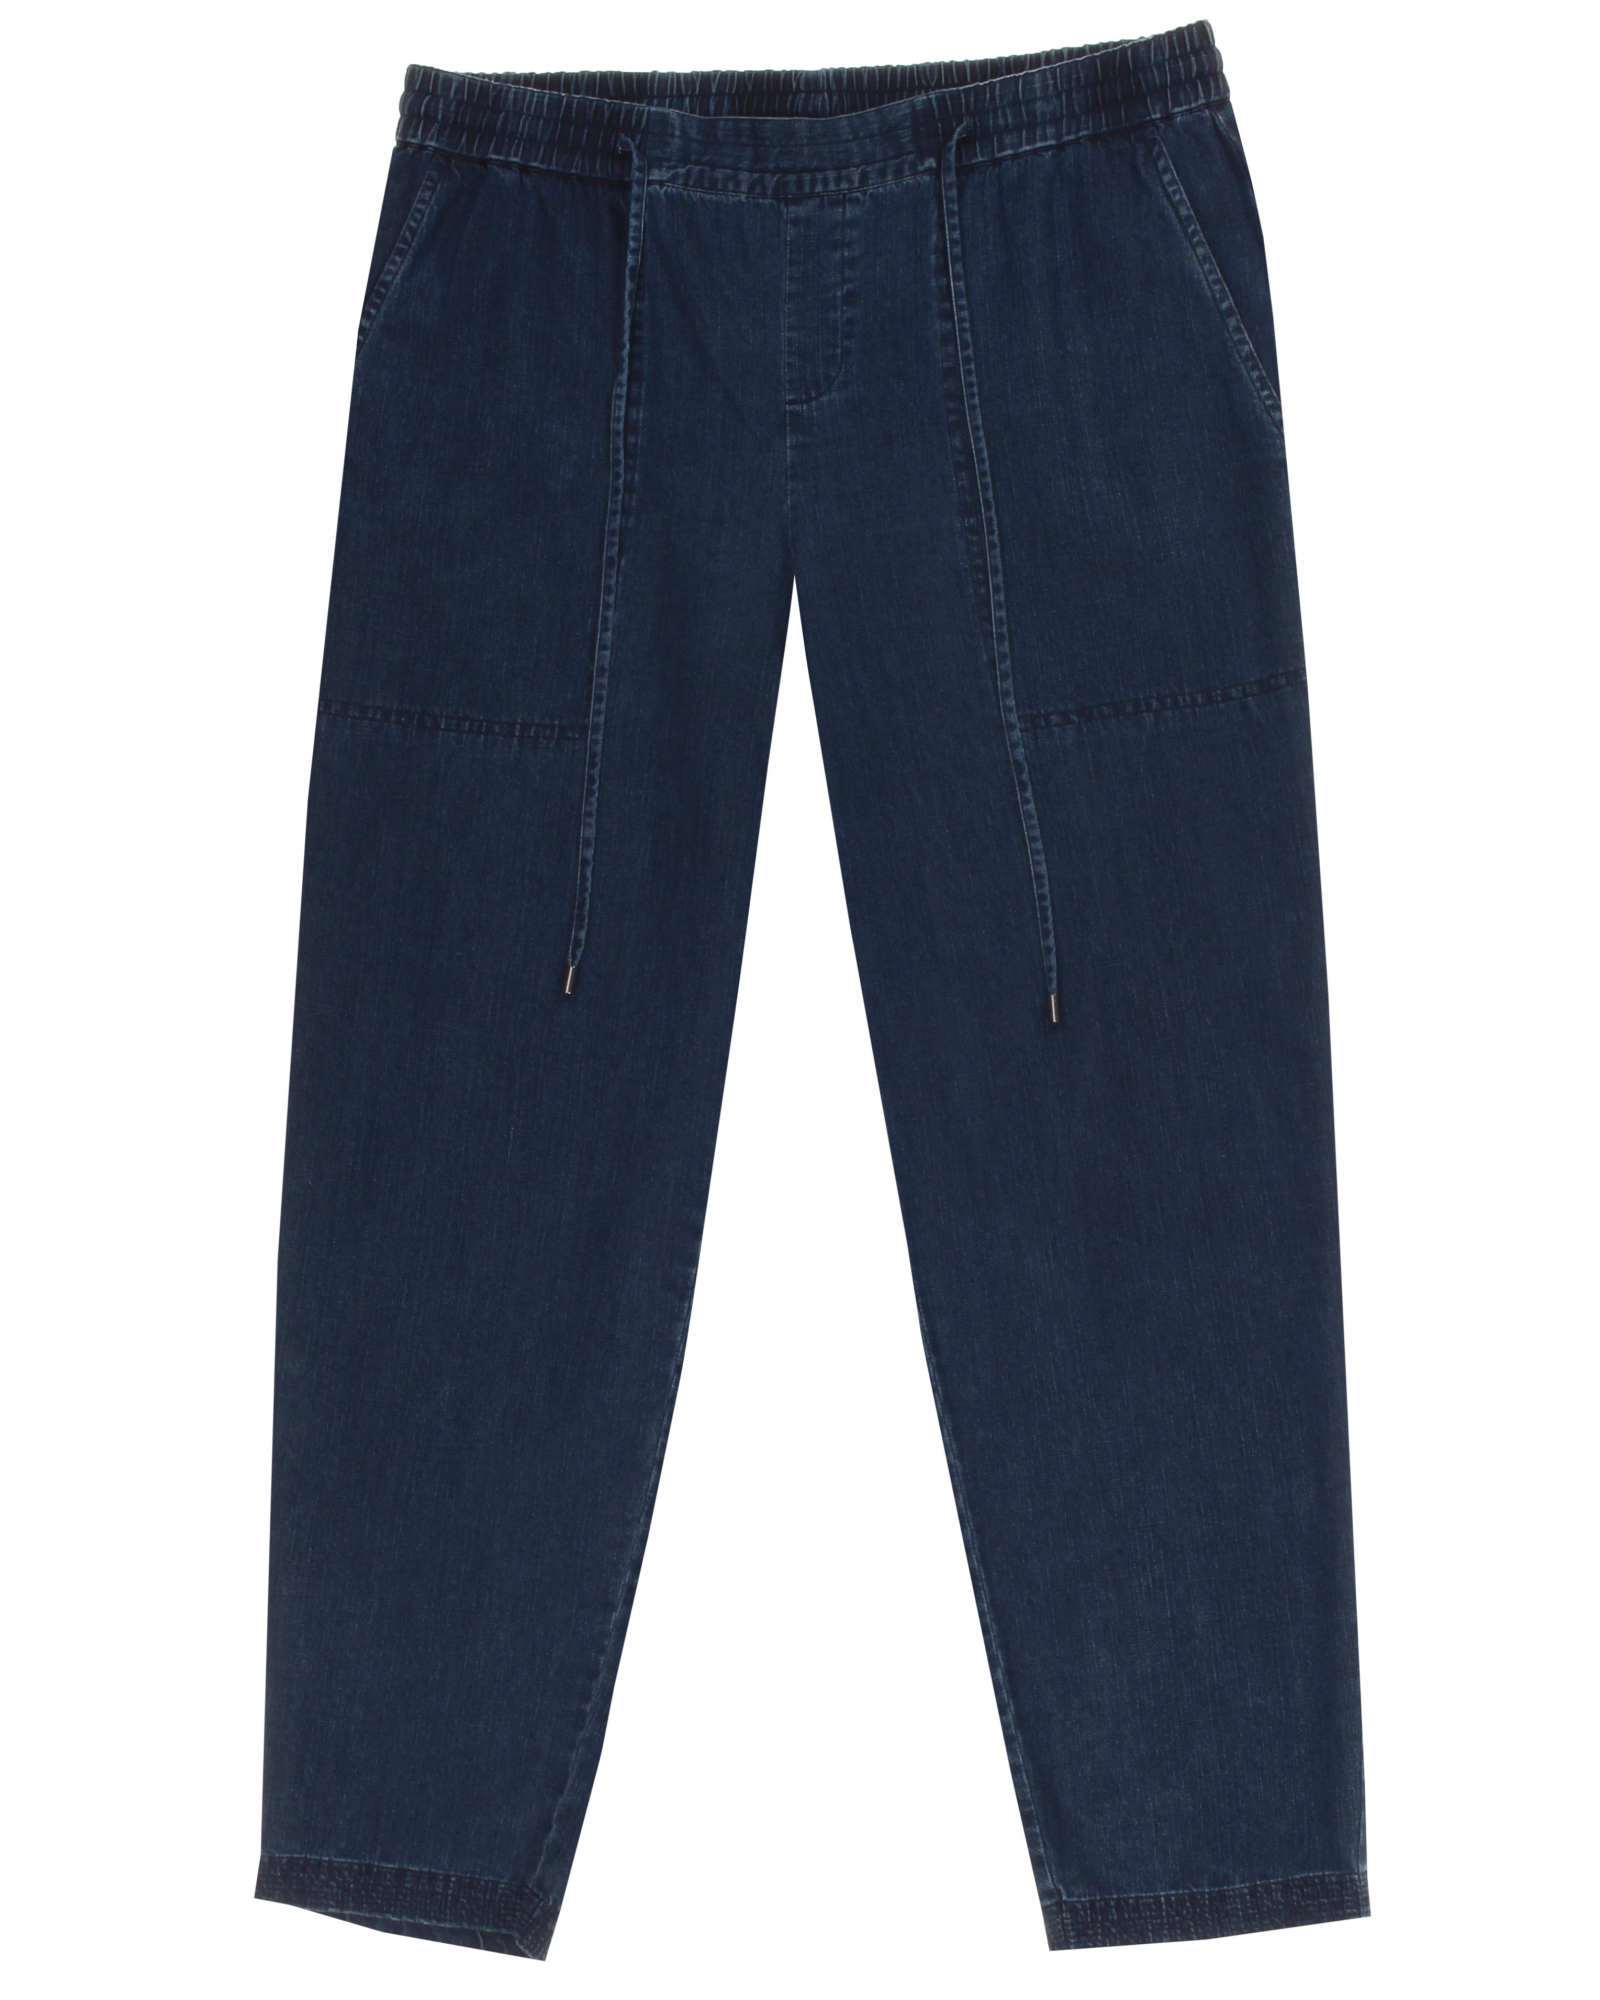 Tencel Organic Cotton Denim Pant